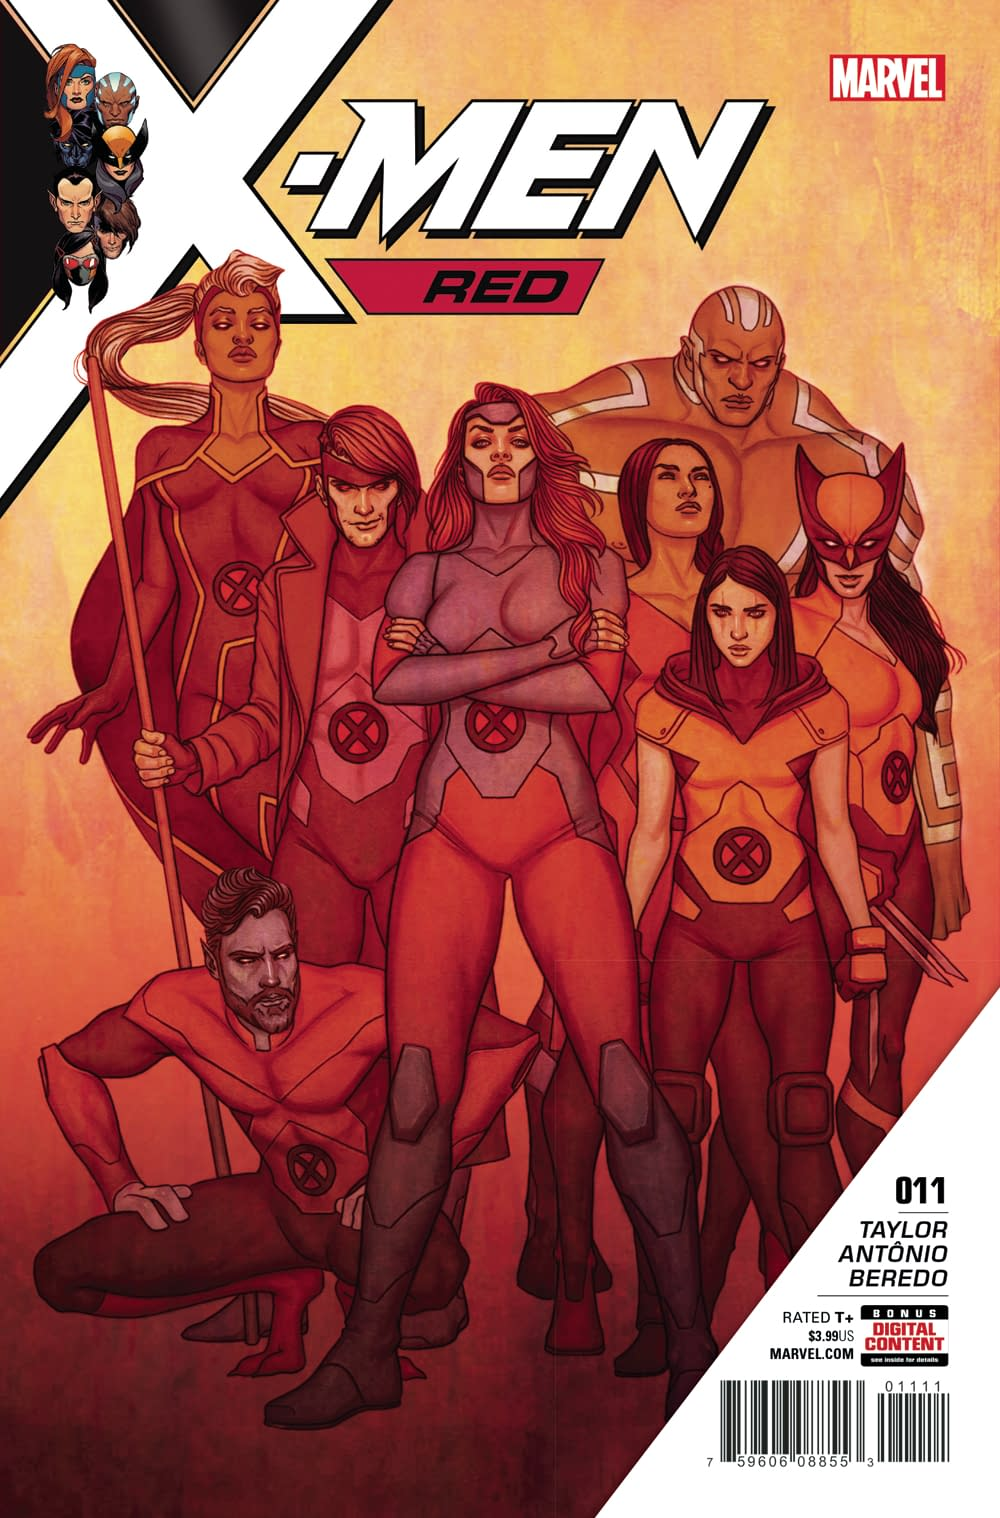 Cassandra Nova Not Adhering to FAA Regulations in Next Week's X-Men Red Finale